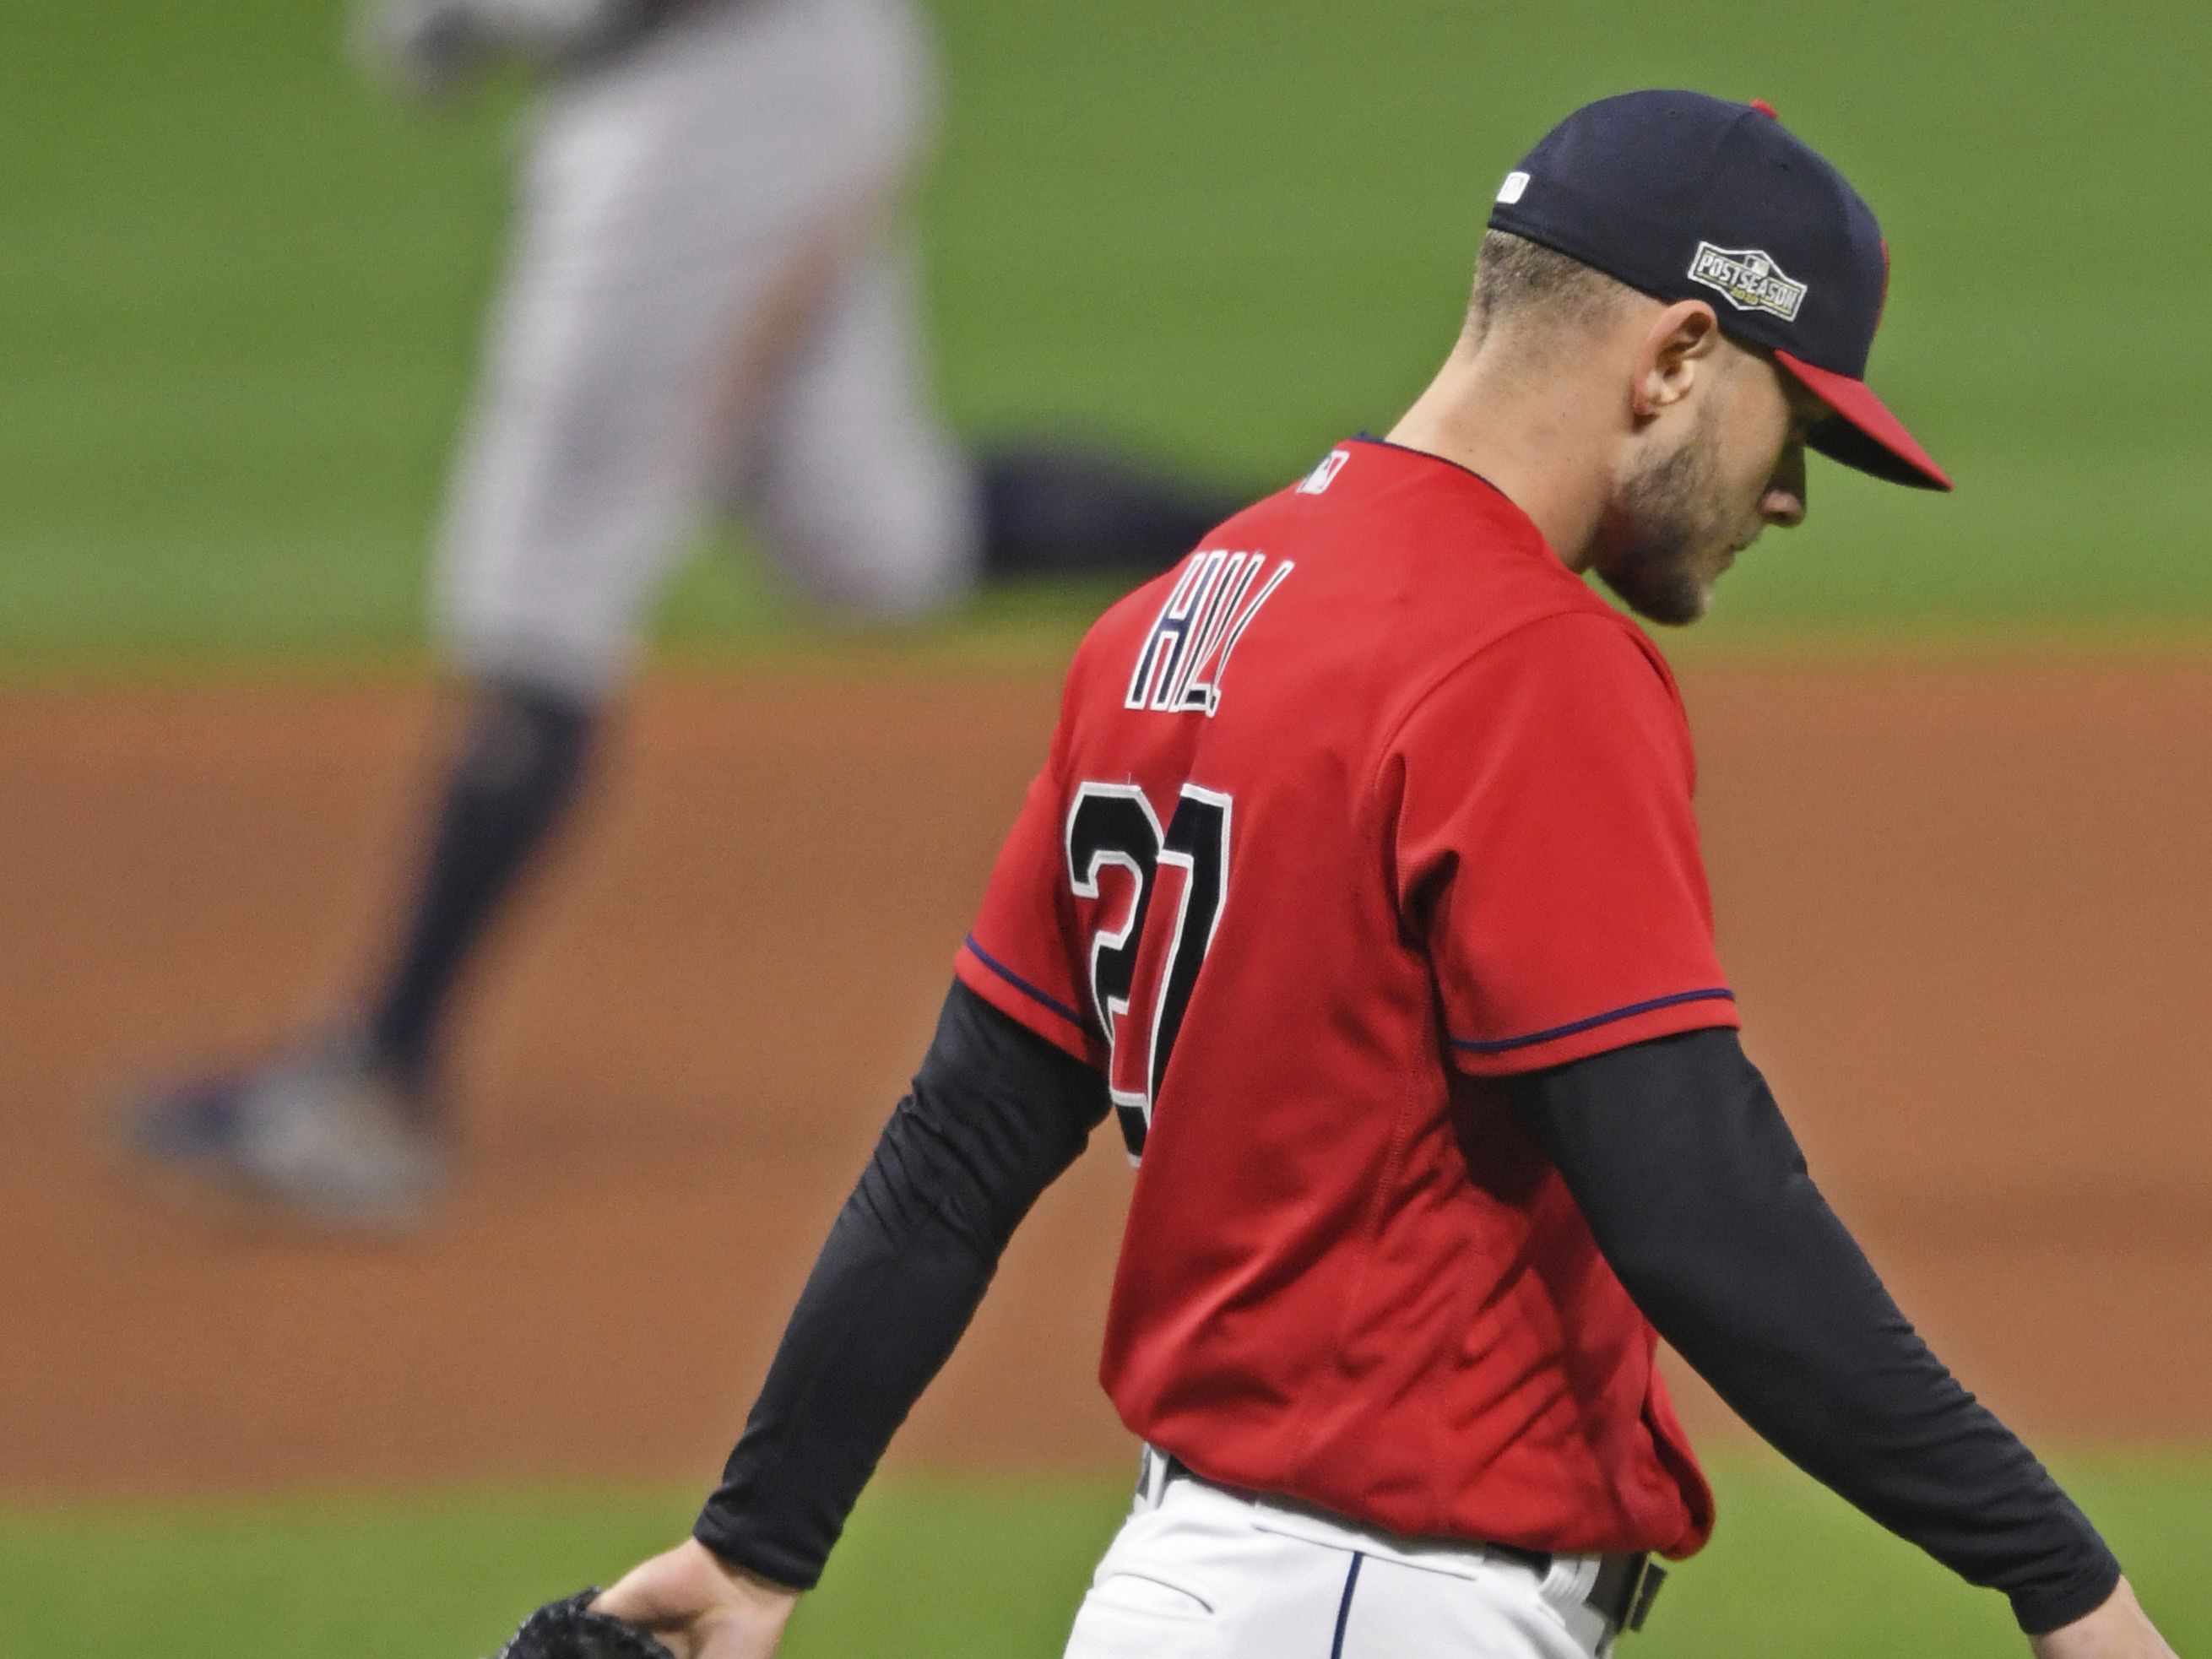 Tribe trounced by Yankees in playoff opener